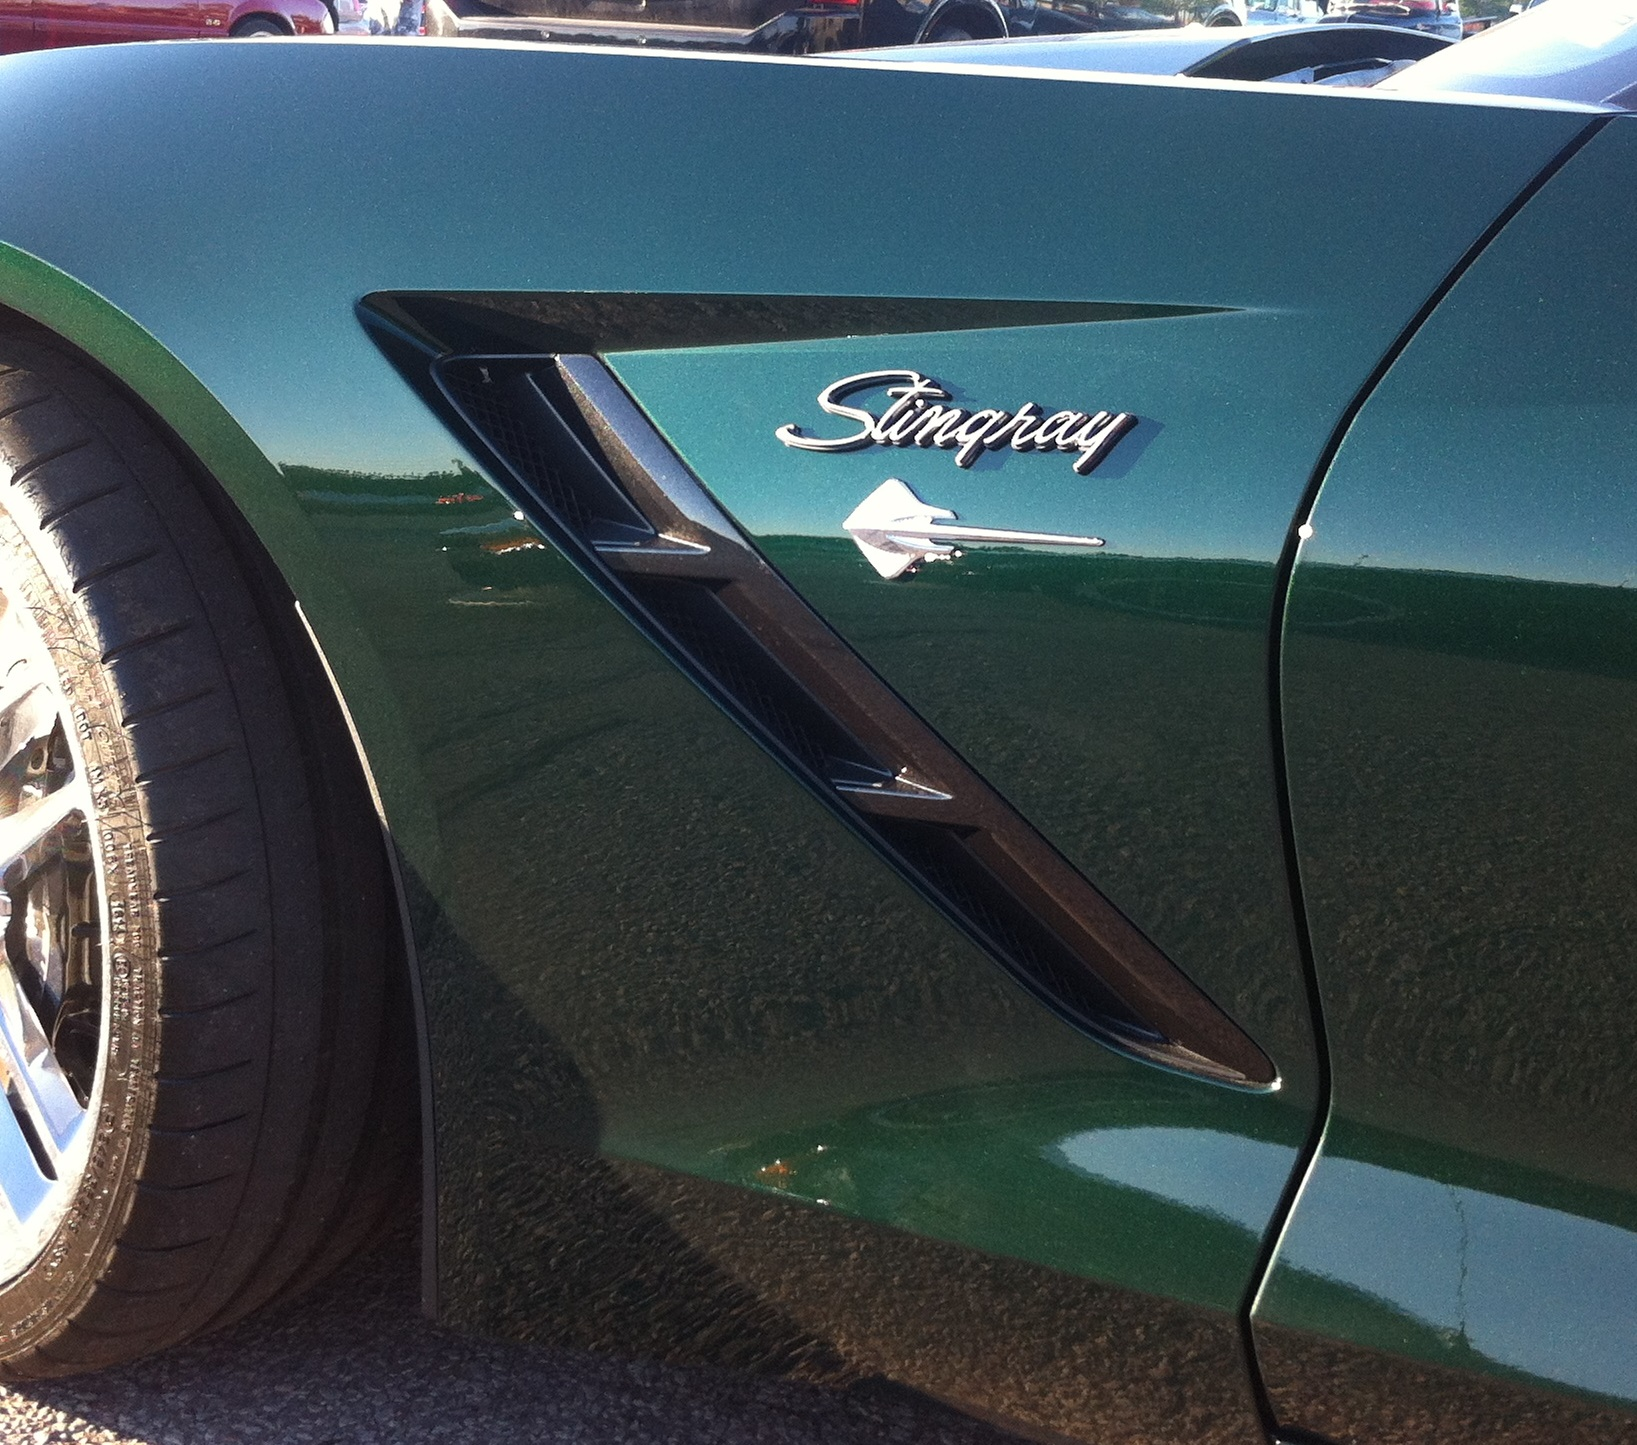 rebadged C7 with C3 Stingray script badges